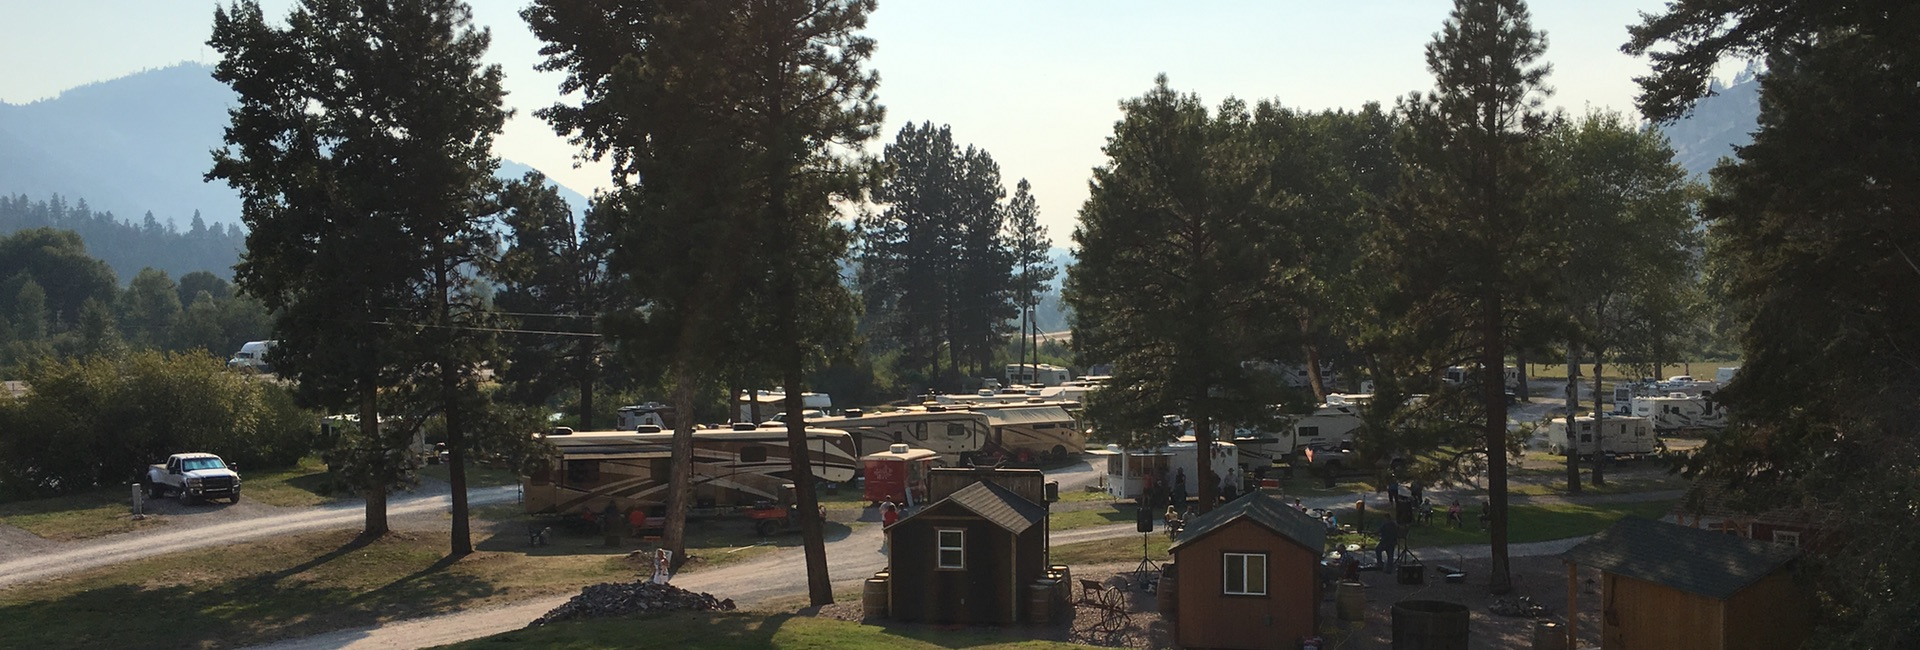 Bearmouth RV Park in Summertime